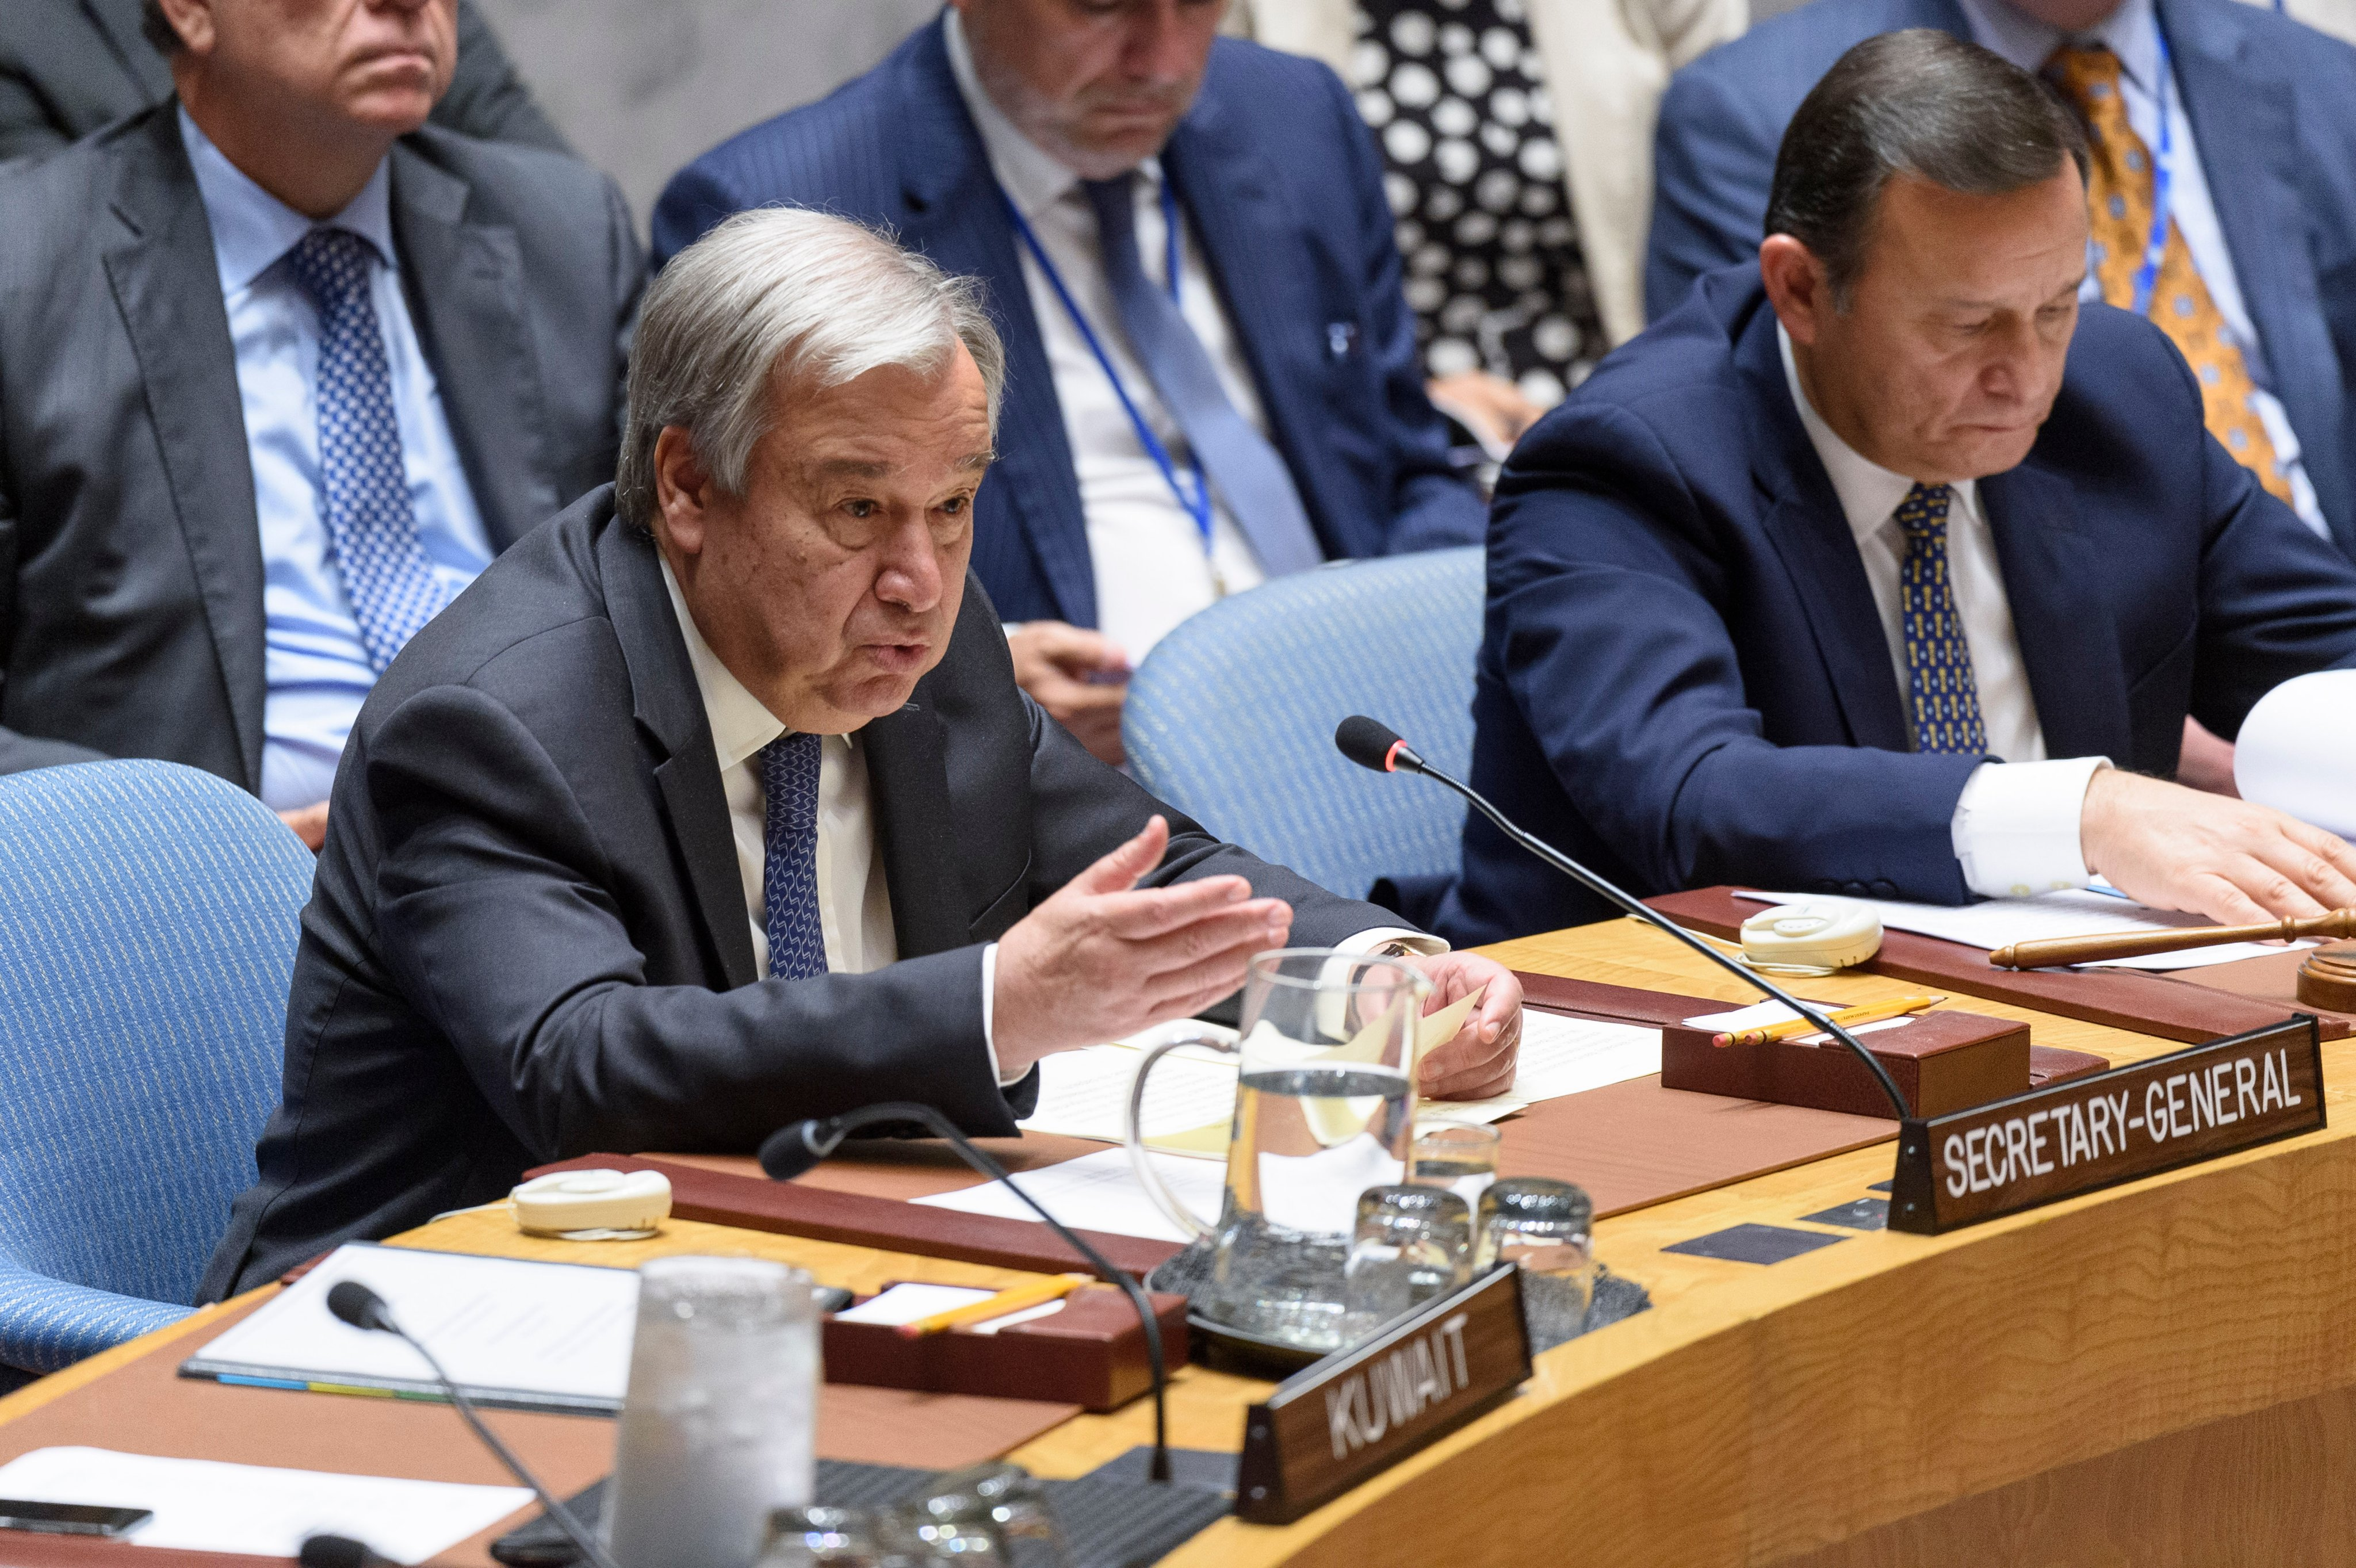 United Nations chief Antonio Guterres urged India and Pakistan to exercise maximum restraint. Photo courtesy: Twitter/@antonioguterres